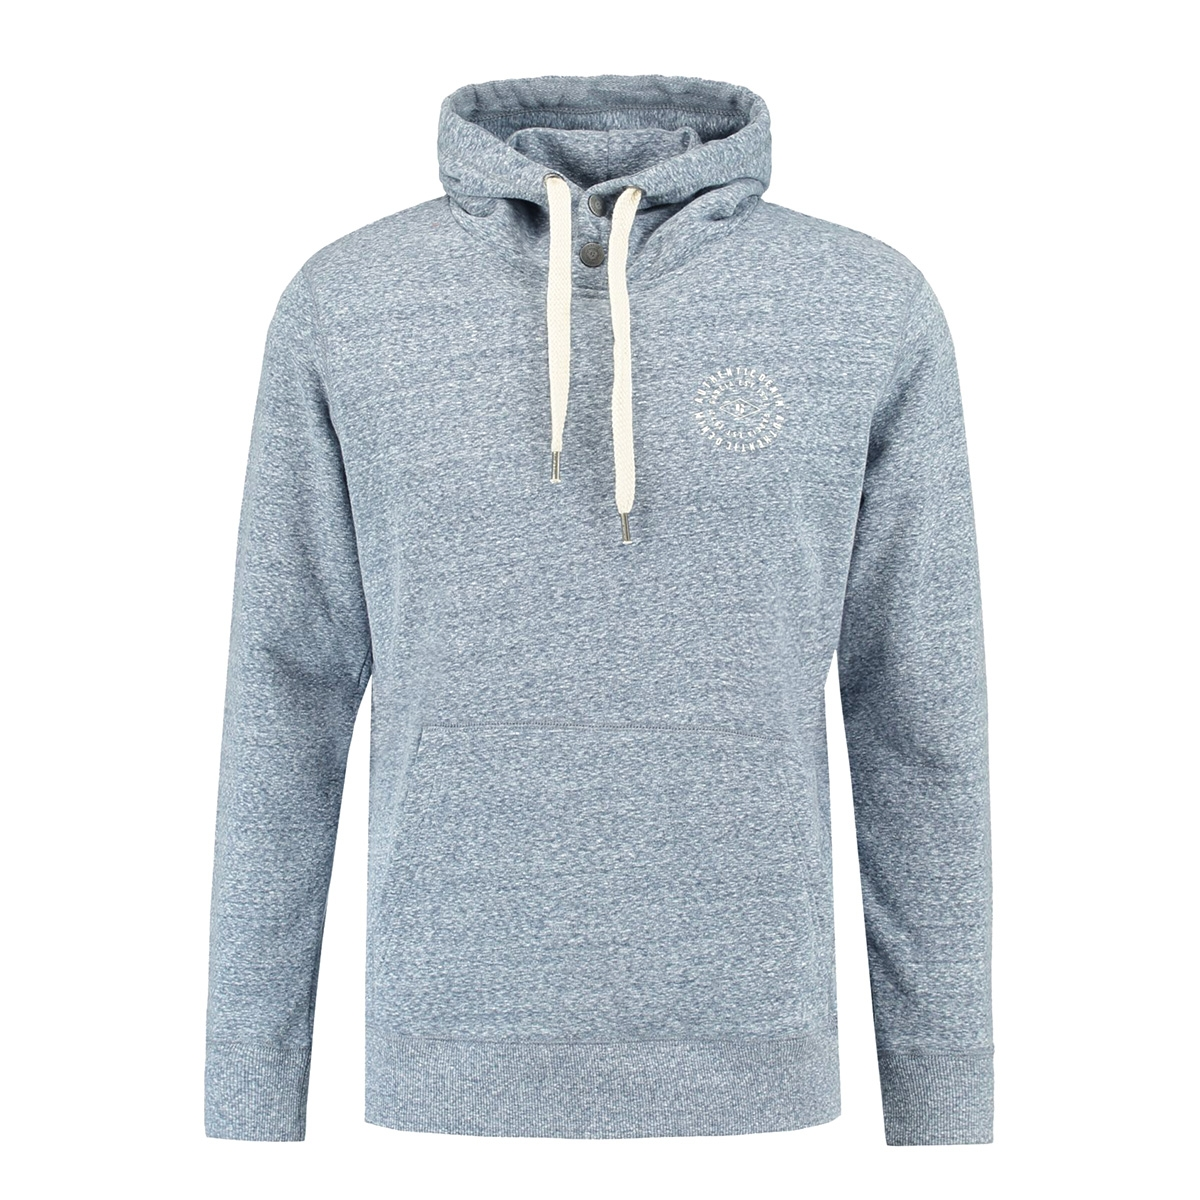 gs910120 garcia sweater 70 marine